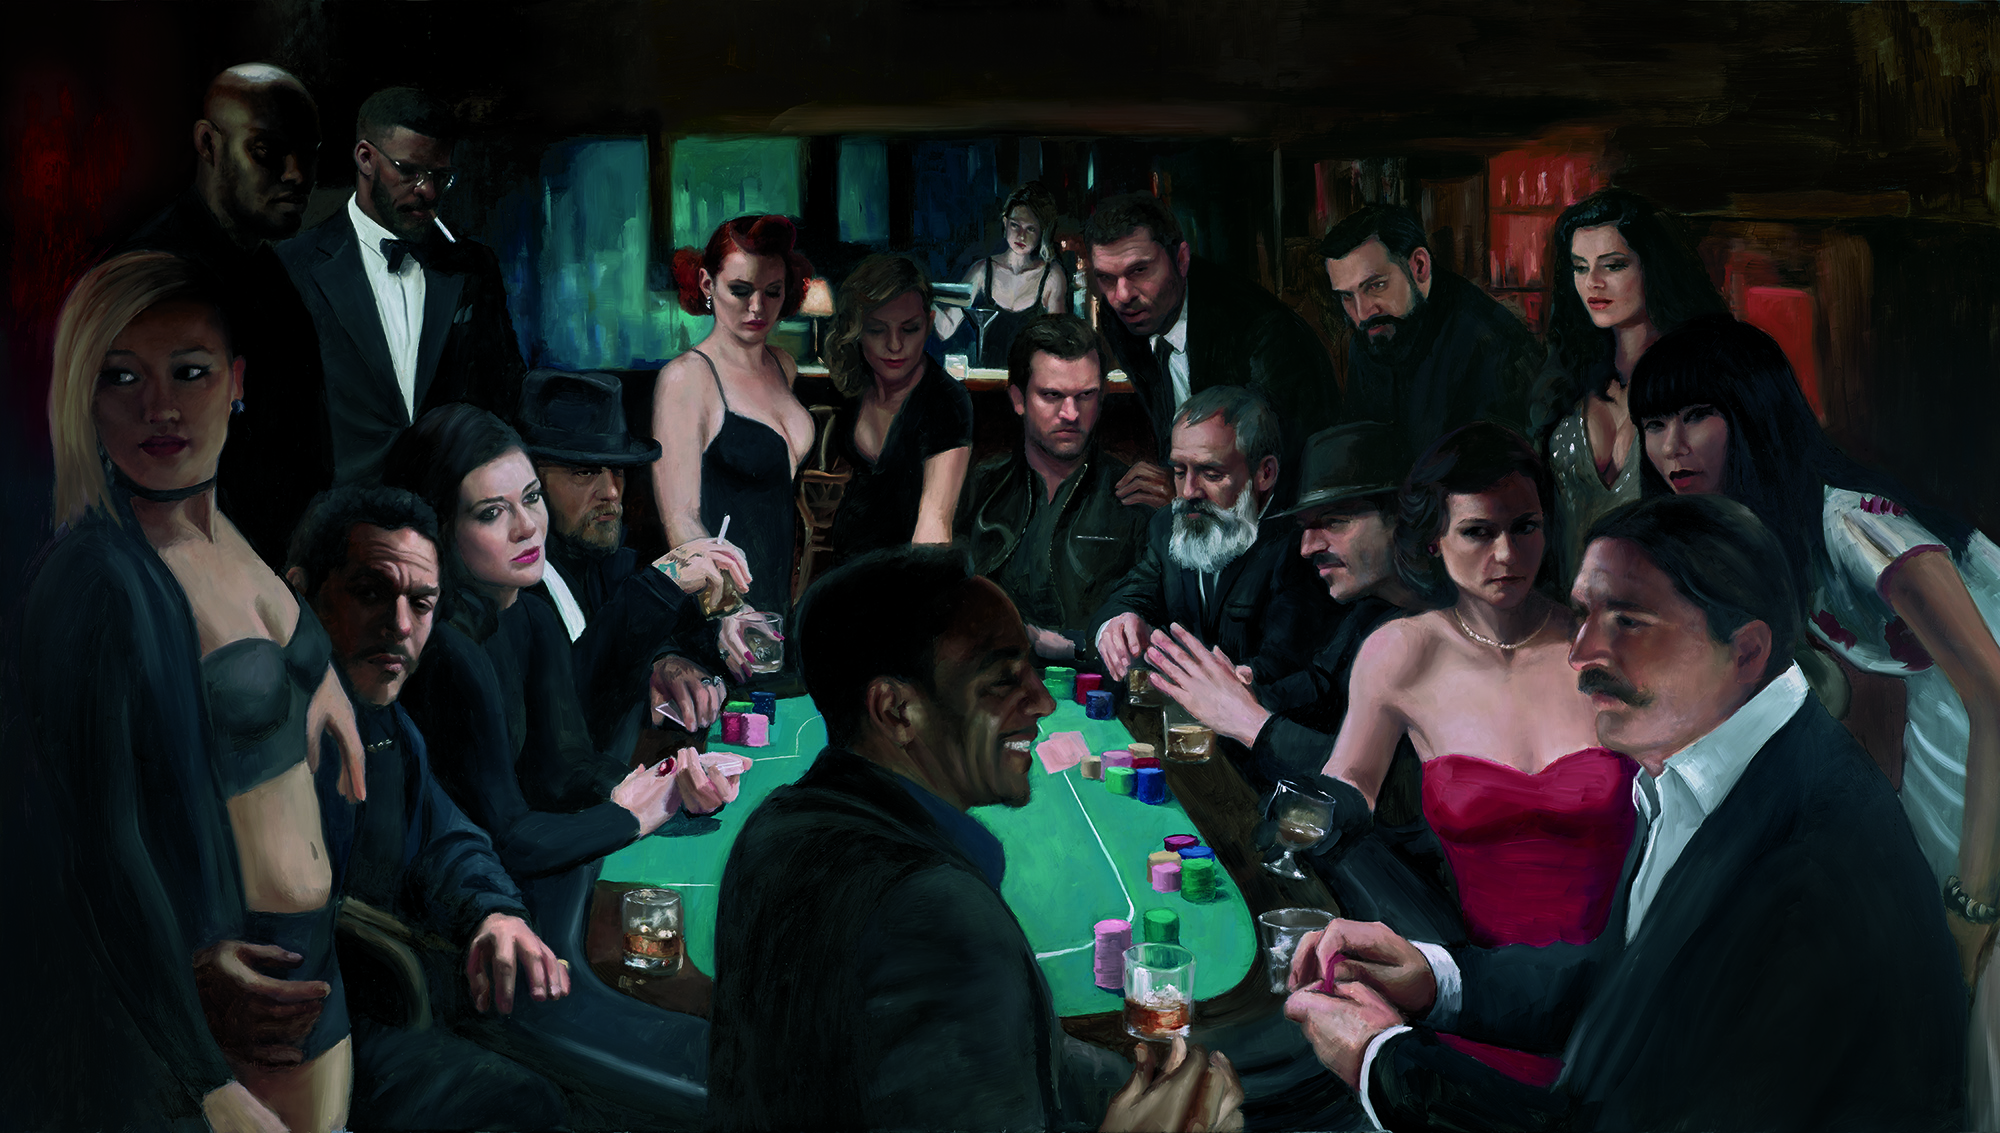 The Long Game - The Long Game is a series of paintings telling the story greed and vengeance and poker. The paintings were shown at Clarendon Fine Art, Mayfair on November 8th 2018. Click on image to see the series.